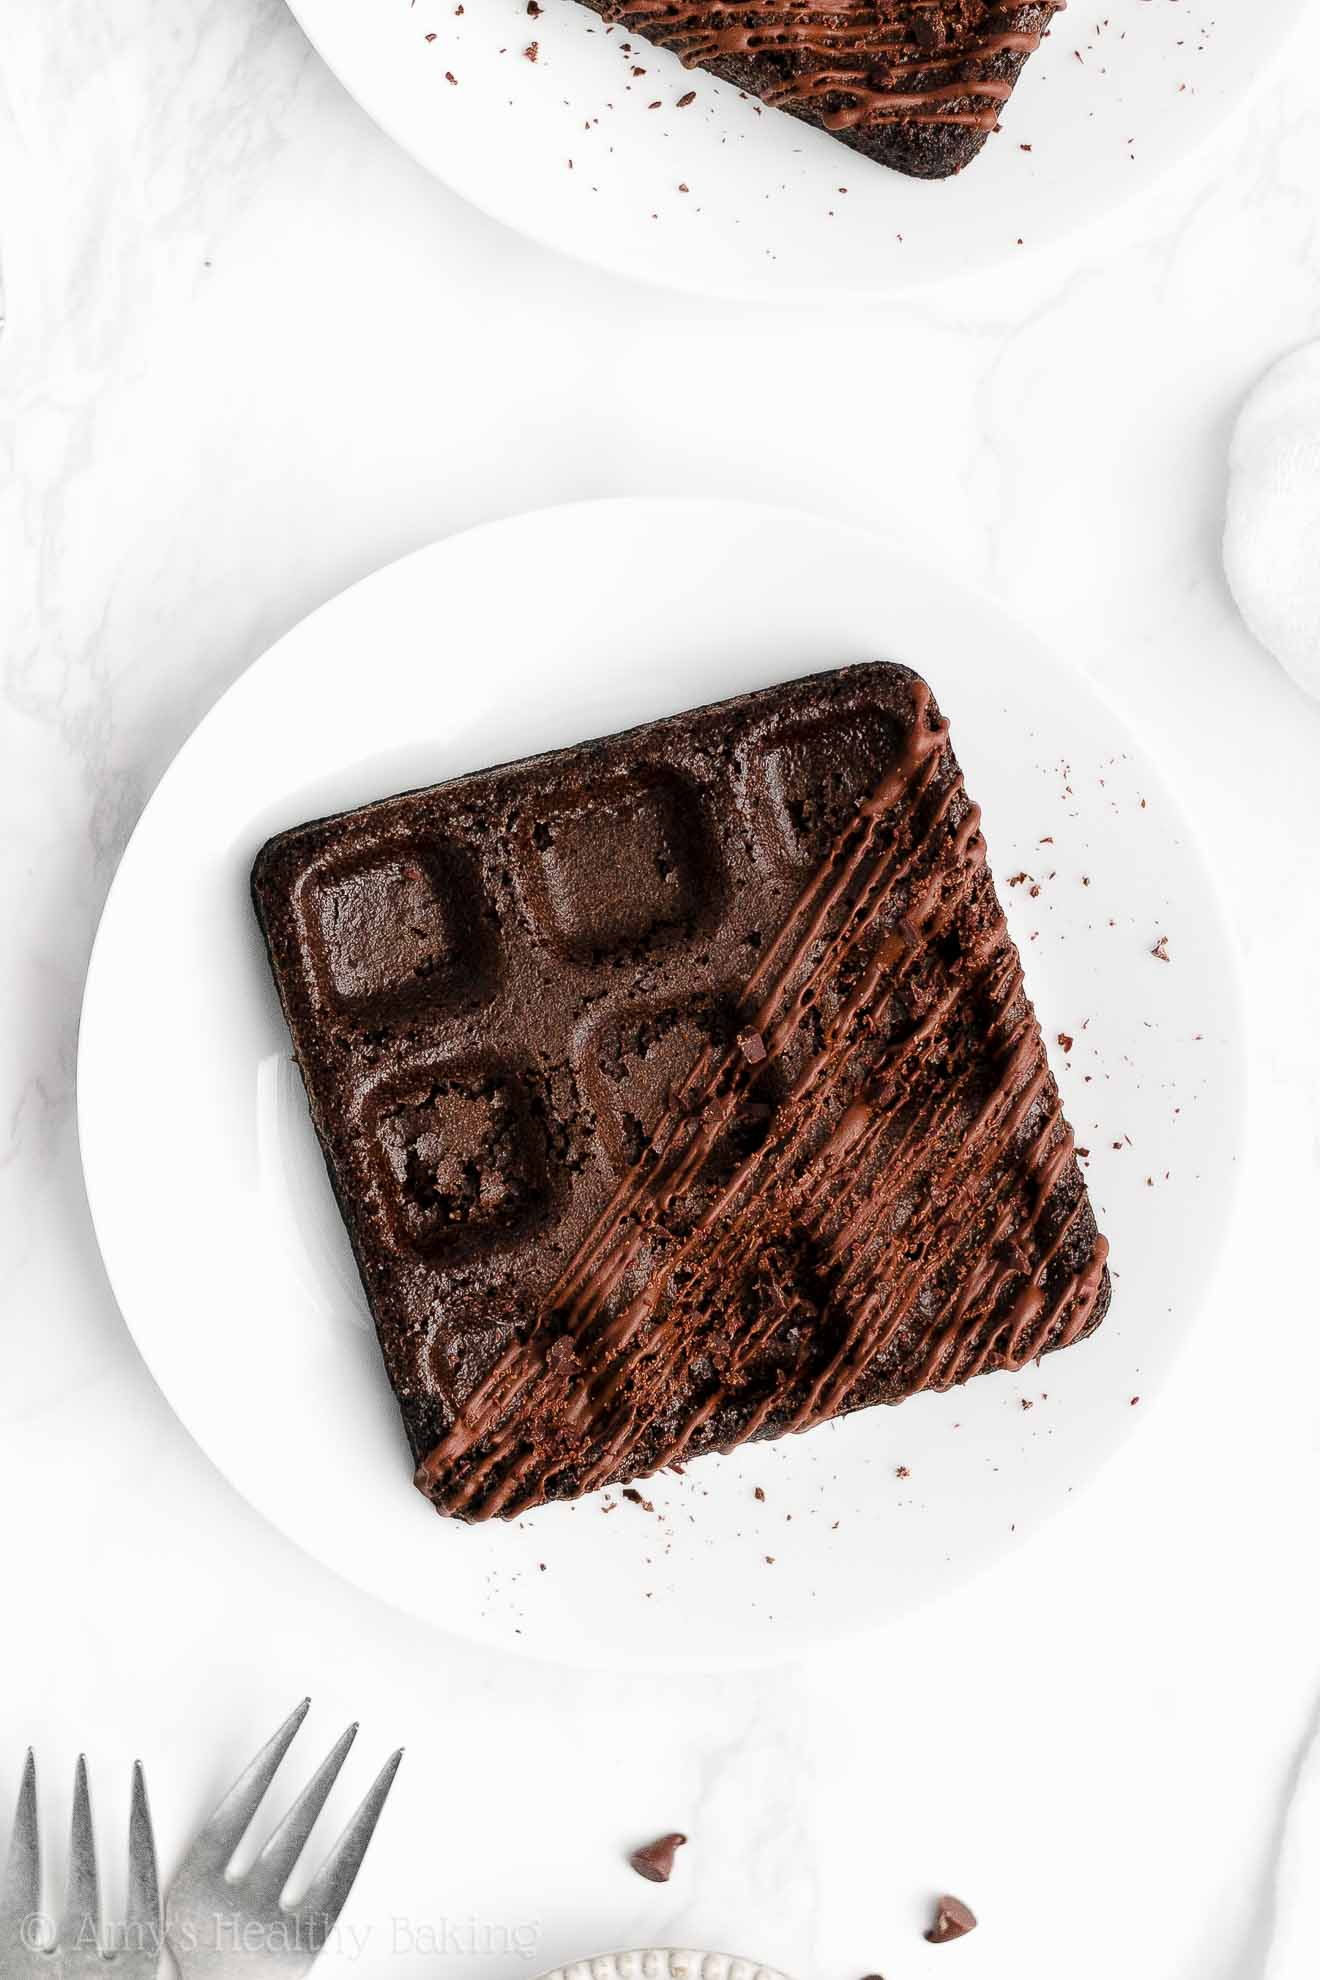 ULTIMATE Healthy Clean Low Calorie Homemade Baked Dark Chocolate Waffles